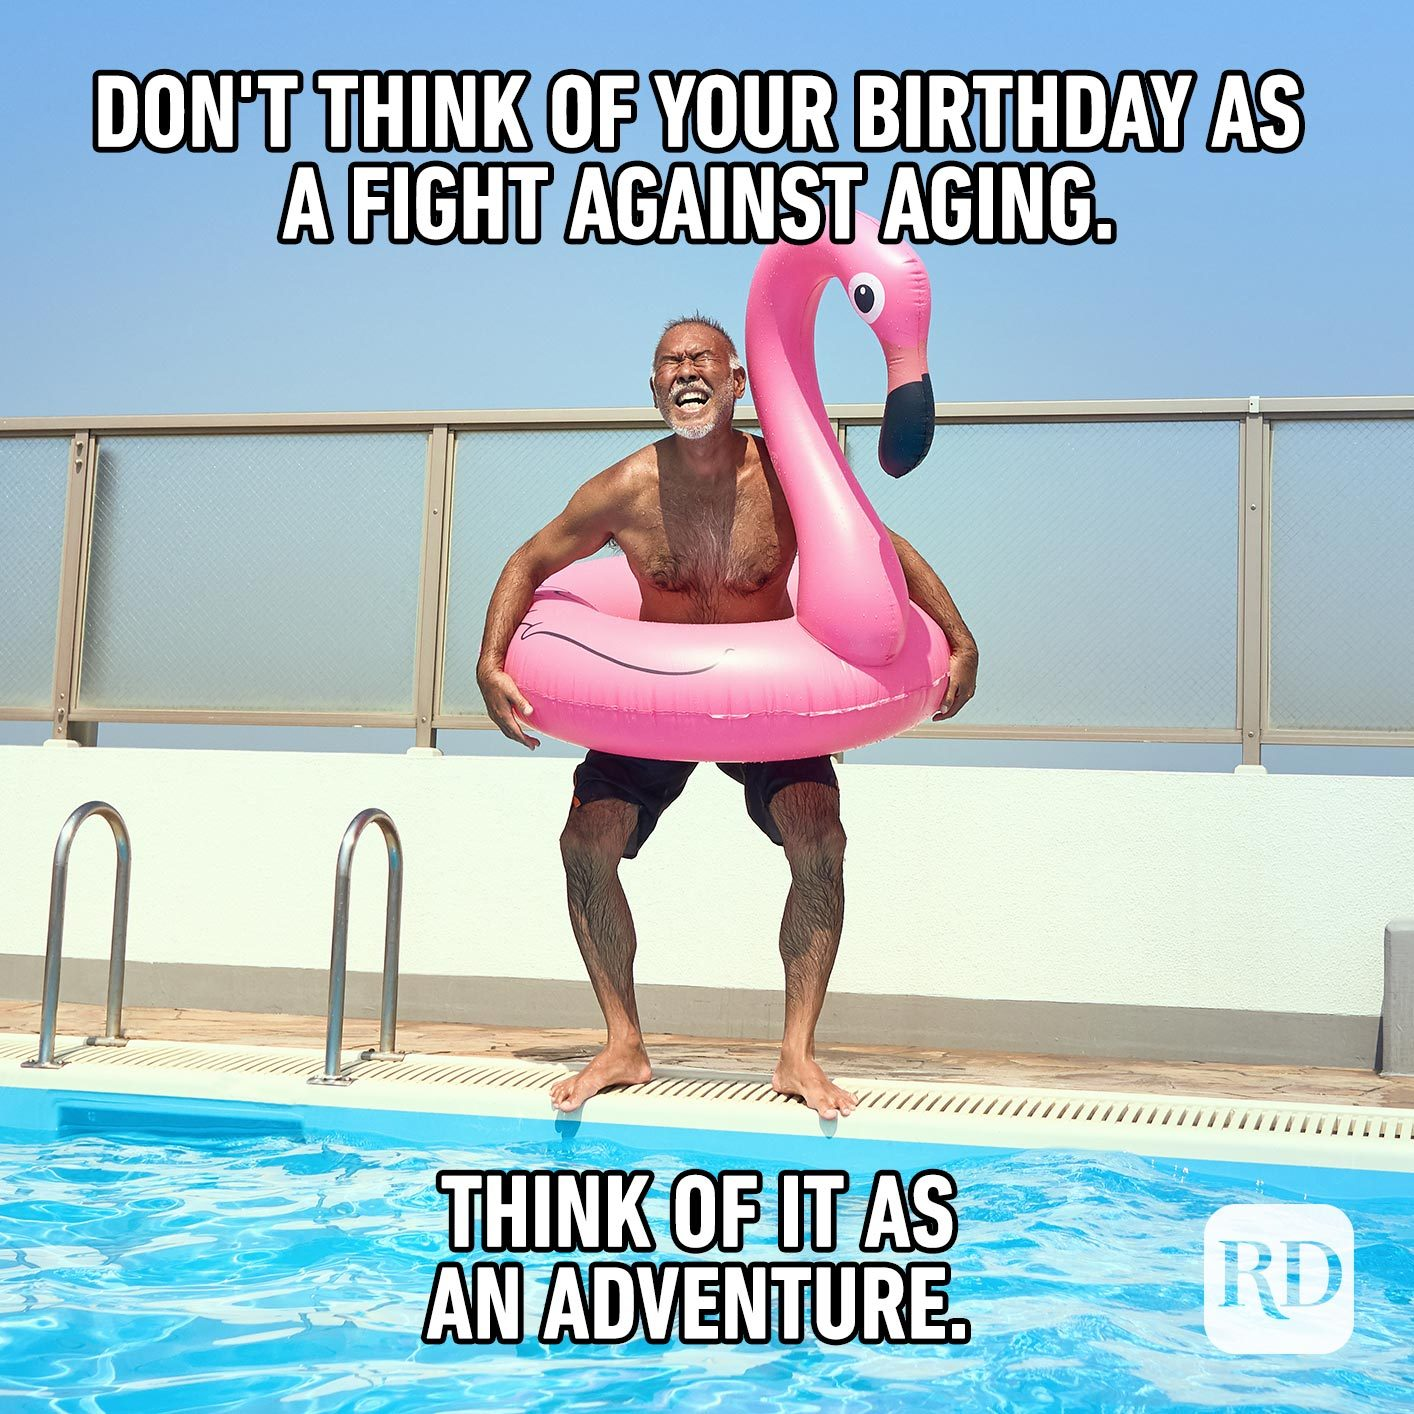 Don't think of your birthday as a fight against aging. Think of it as an adventure.